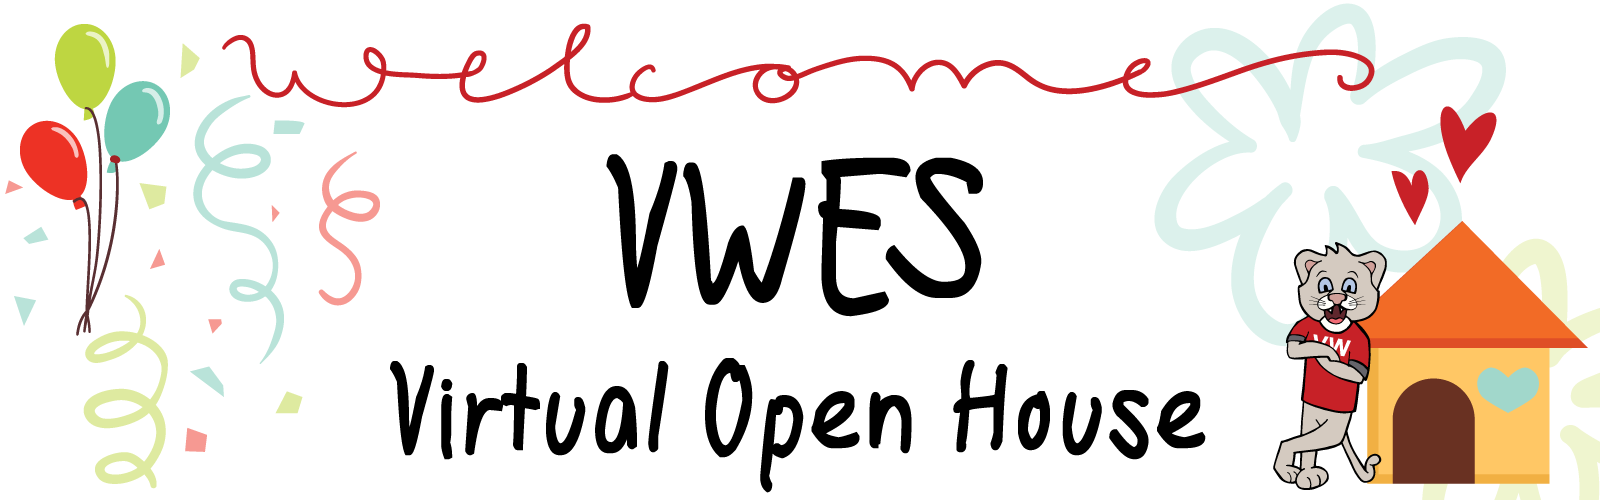 Welcome to VWES Virtual Open House